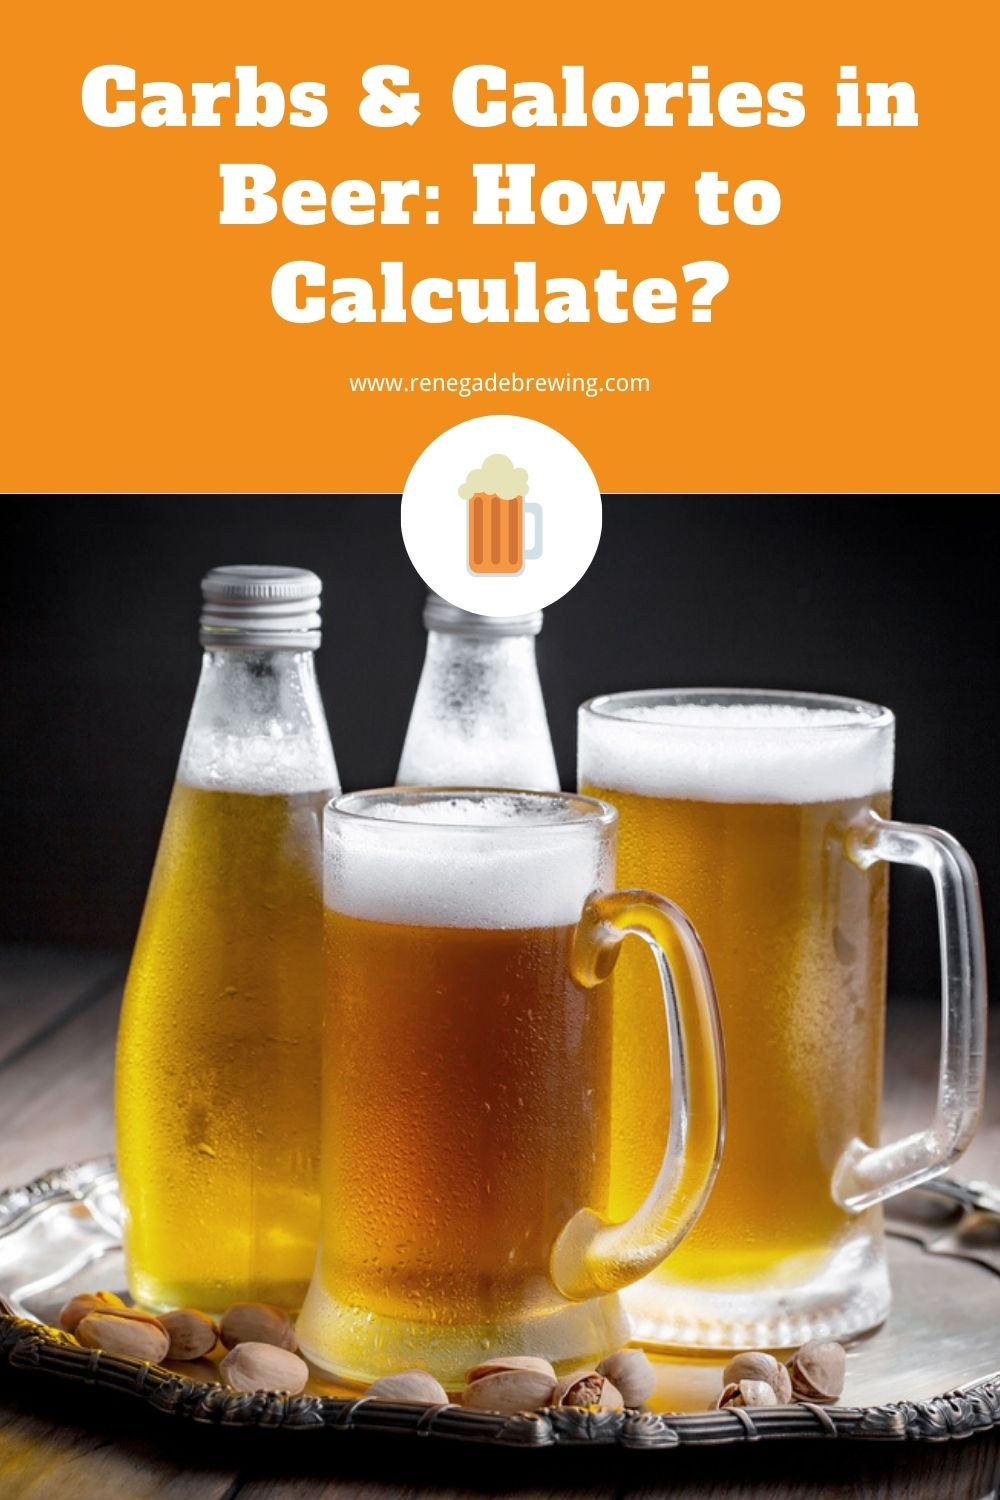 Carbs & Calories in Beer How to Calculate 2